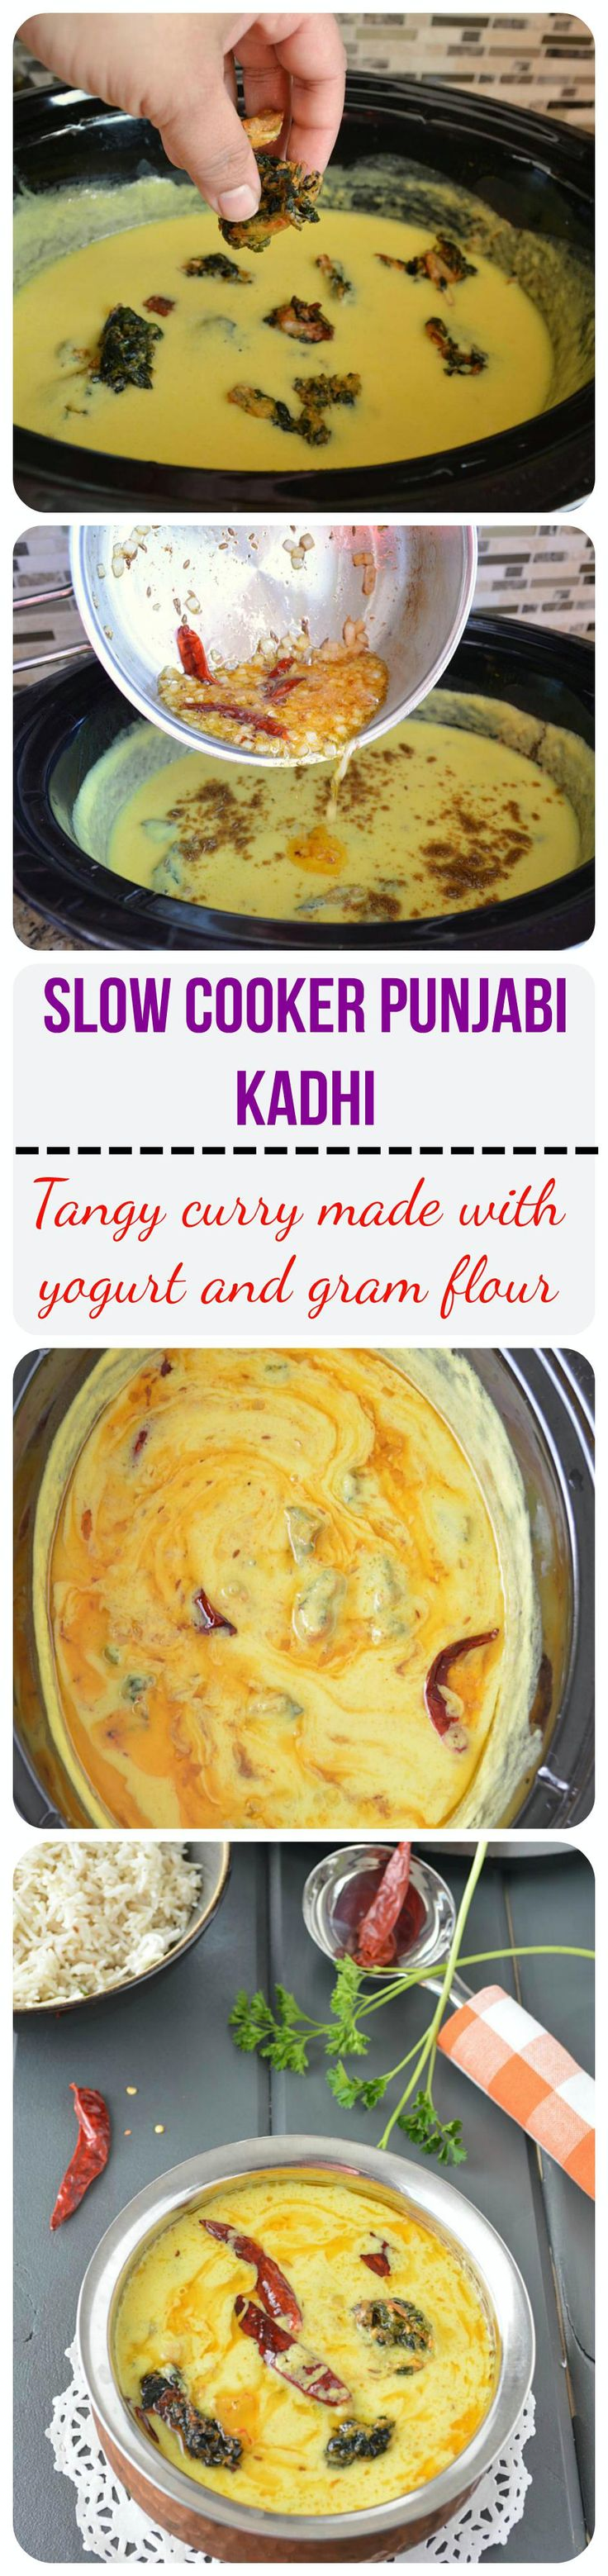 Punjabi kadhi recipe in slow cooker or crockpot Aromatic & delicious Punjabi Kadhi Pakora prepared with buttermilk and gram flour and cooked in slow cooker. A hearty and comforting meal when paired up with cumin rice!!